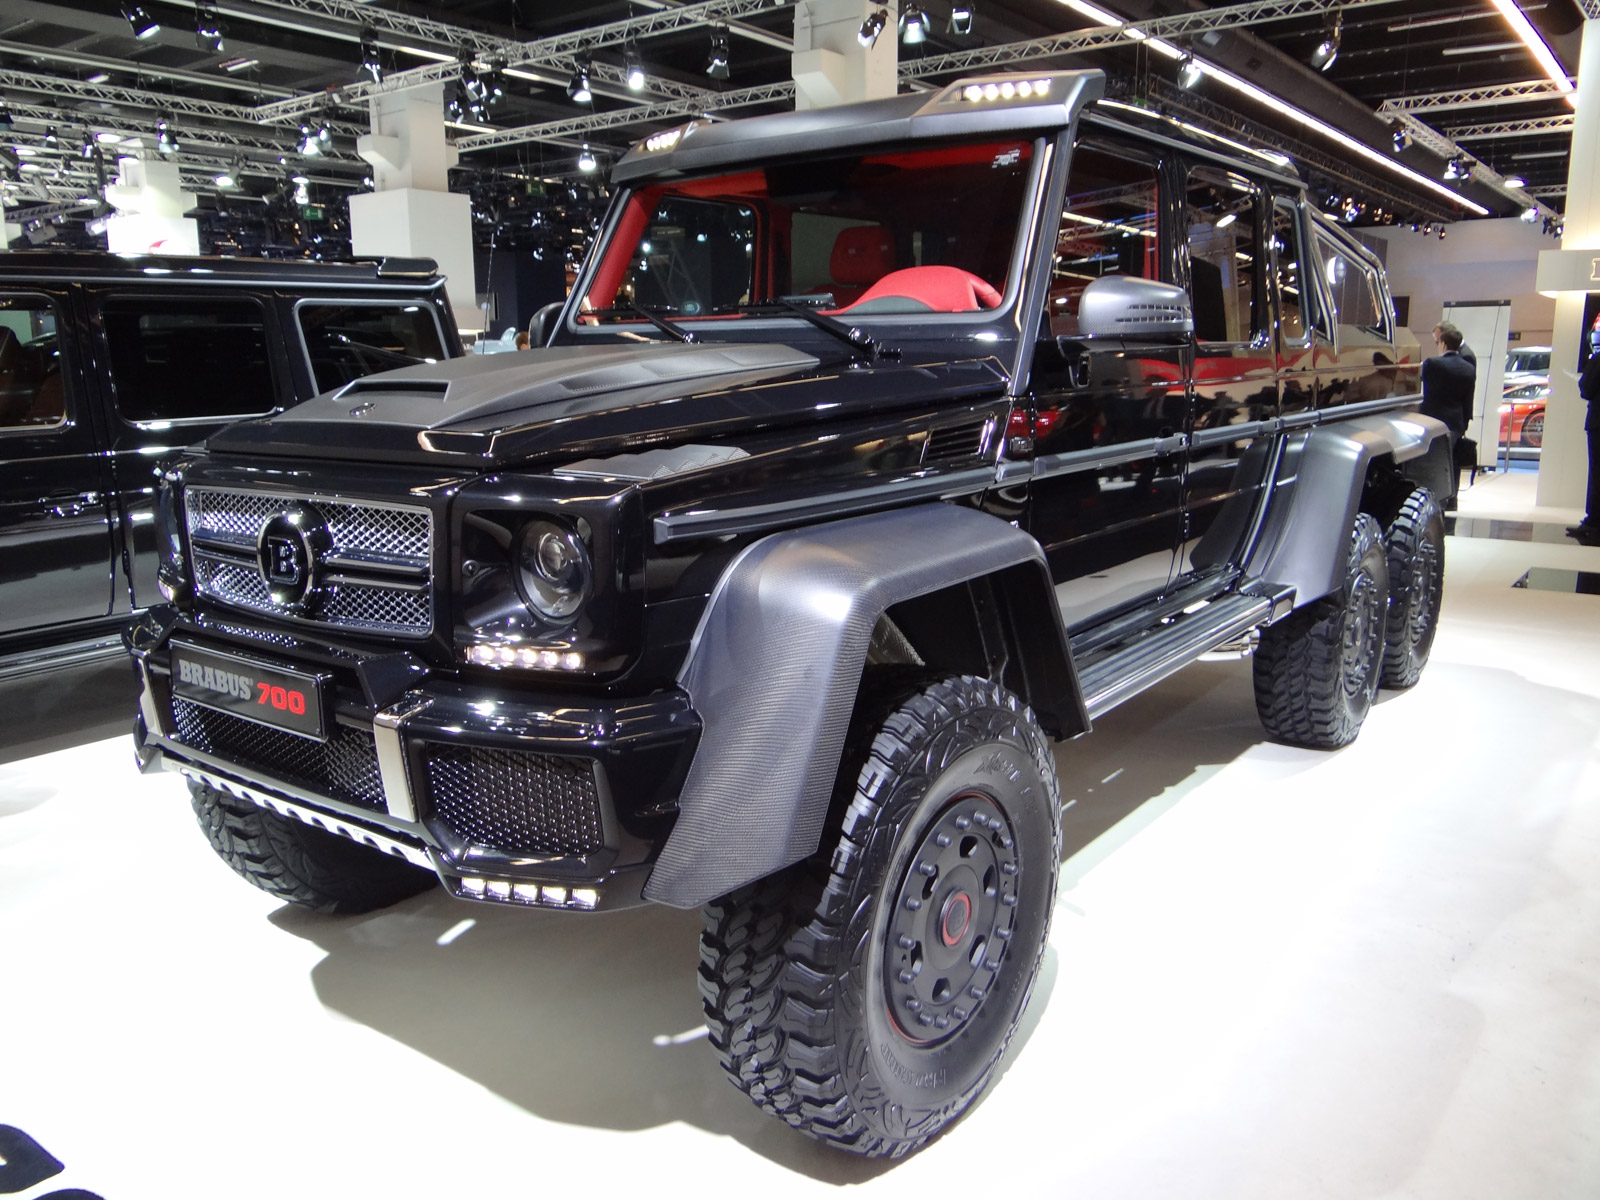 2013 Brabus B63s Is An Exercise In Delightful Insanity